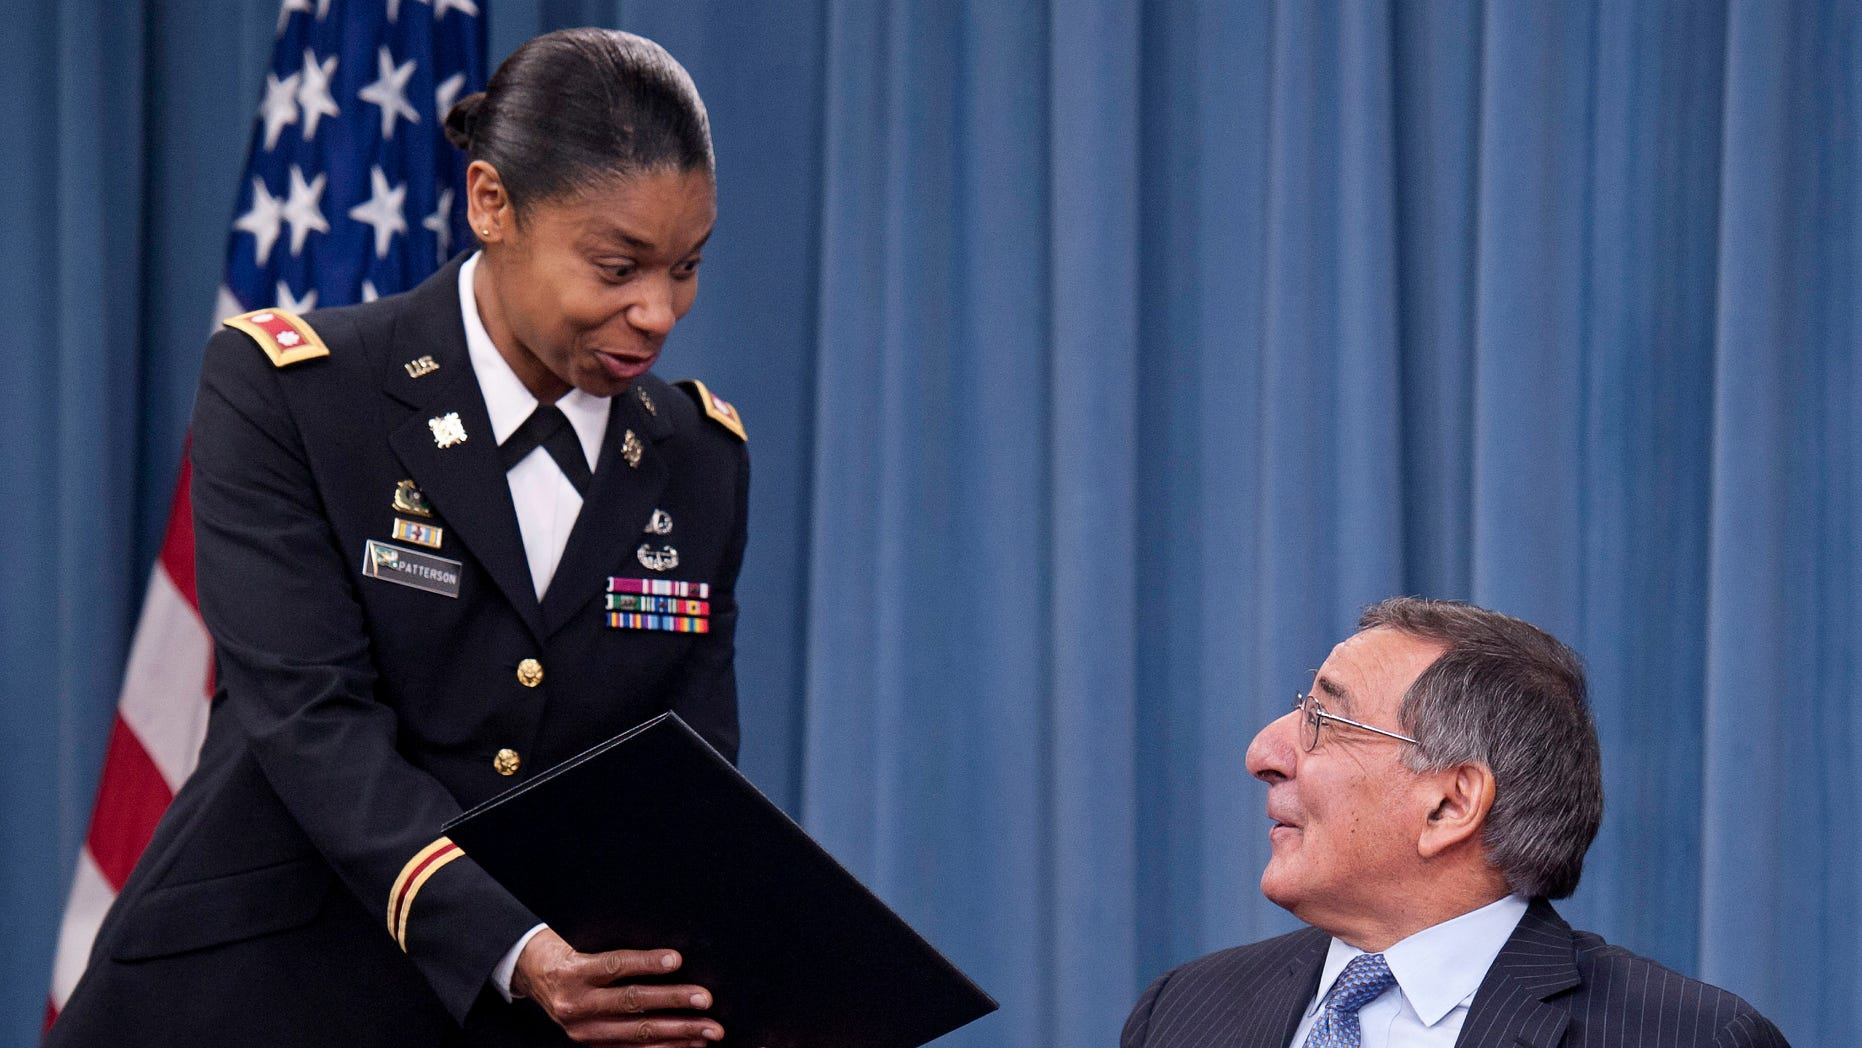 FILE – in this Jan. 24, 2013, file photo Secretary of Defense Leon Panetta hands the memorandum he has just signed, ending the 1994 ban on women serving in combat, to Army Lt. Col. Tamatha Patterson of Huntingdon, Tenn., during a press briefing at the Pentagon in Arlington, Va., Thursday, Jan. 24, 2013. The decision to lift the ban on women in combat has opened the door for a change in the law that currently compels only men between the ages of 18 and 25 to register for a military draft, according to legal experts and military historians. (AP Photo/Cliff Owen, file)